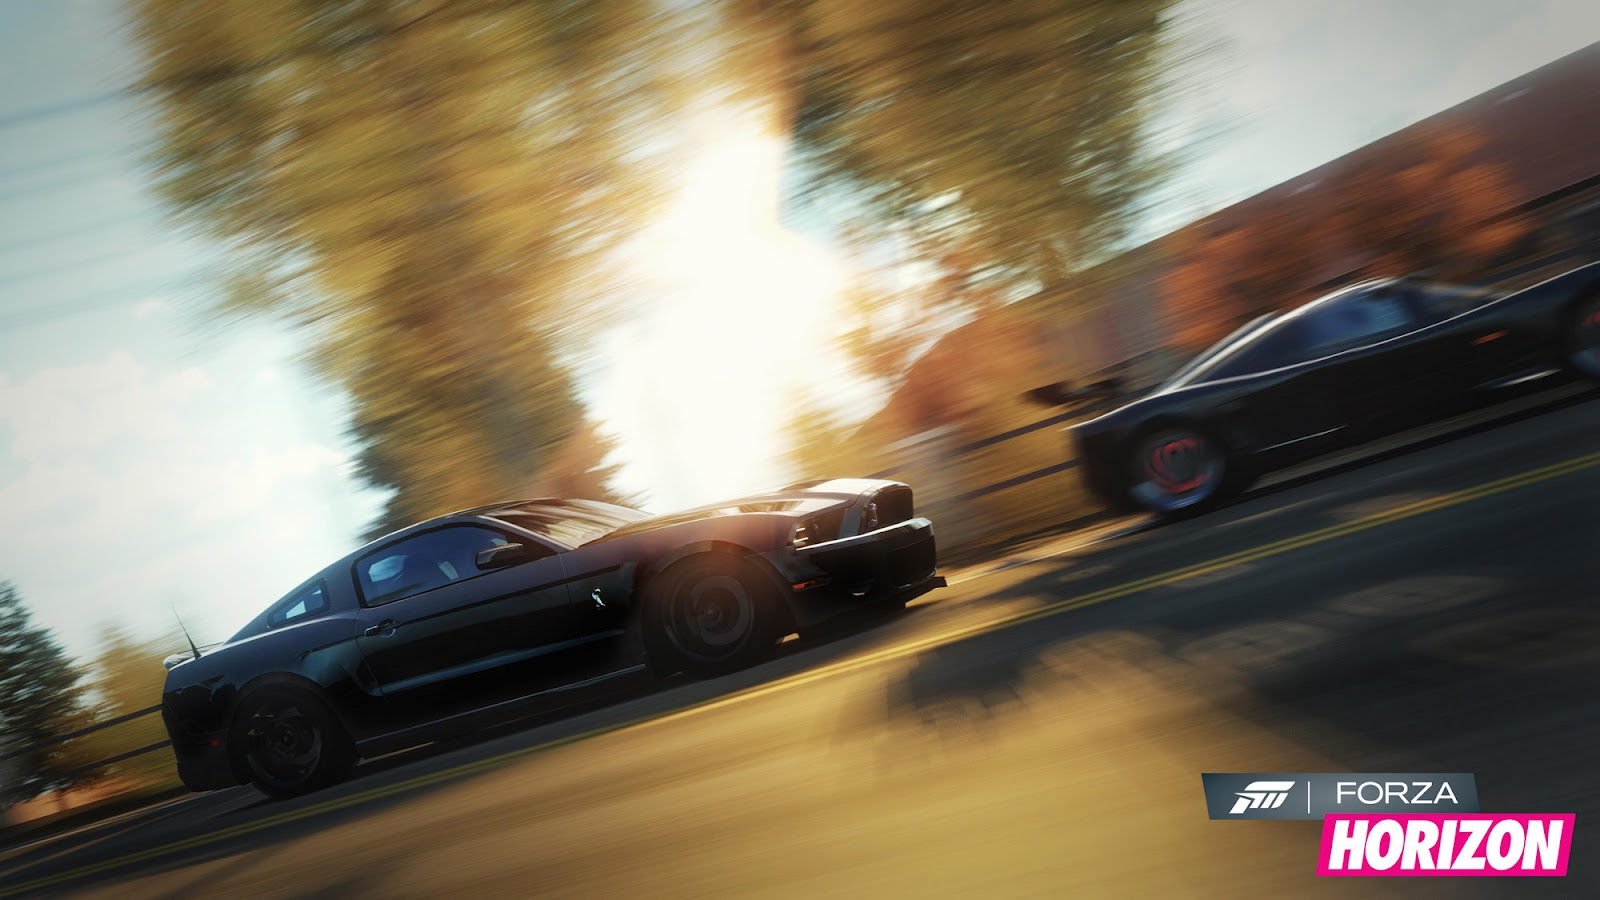 Forza Horizon HD & Widescreen Wallpaper 0.661704036330307